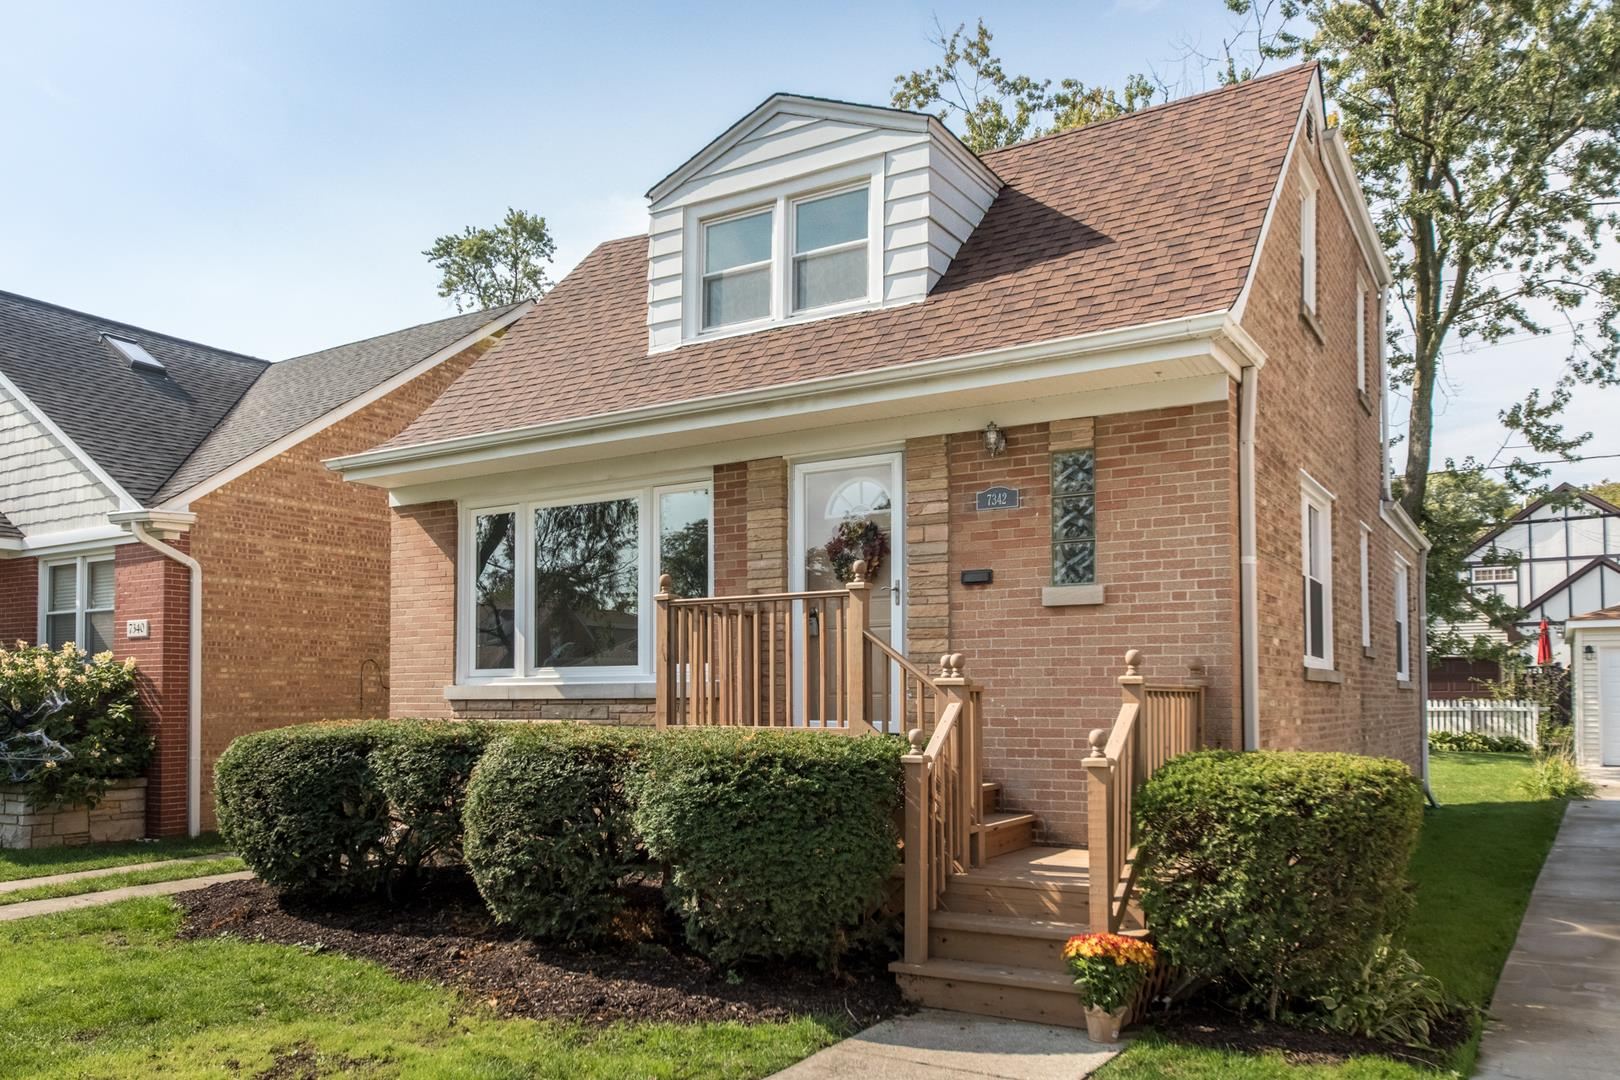 7342 N Odell Avenue, Chicago, IL 60631 - #: 11159722